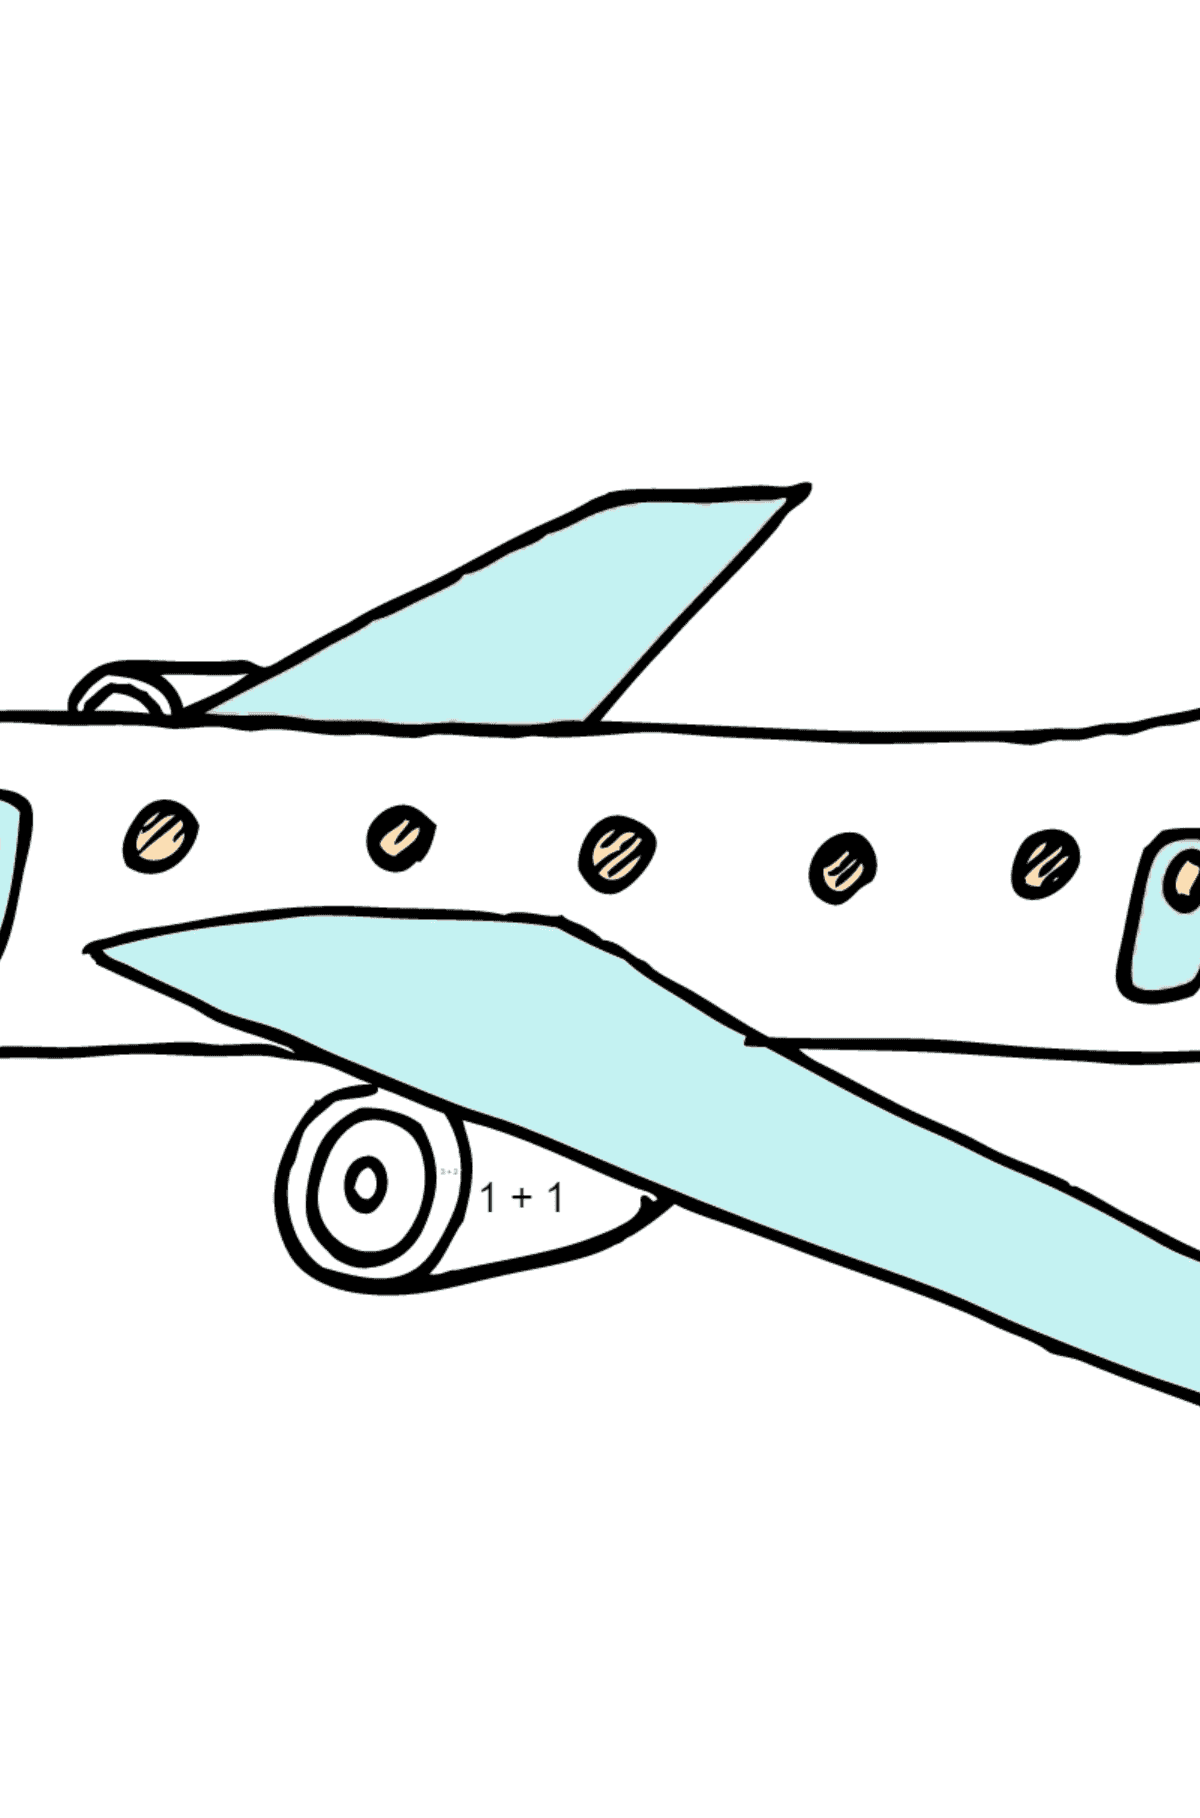 Coloring Page - A Commercial Jet - Math Coloring - Addition for Children